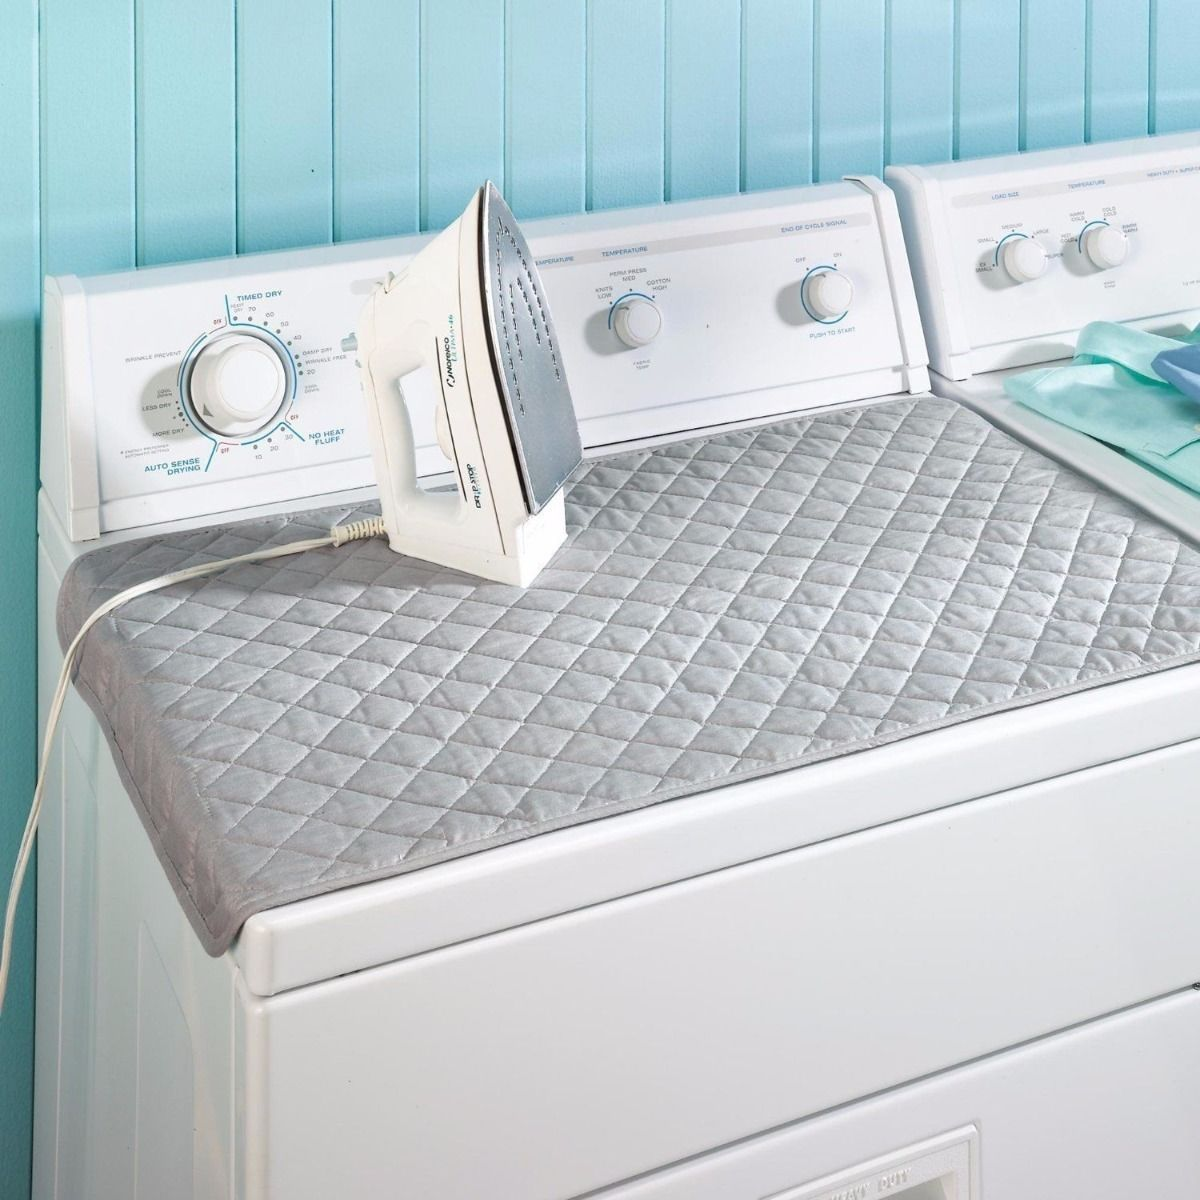 board cover resistant foldable heat ironing itm blanket mat mats dryer laundry washer and description bt